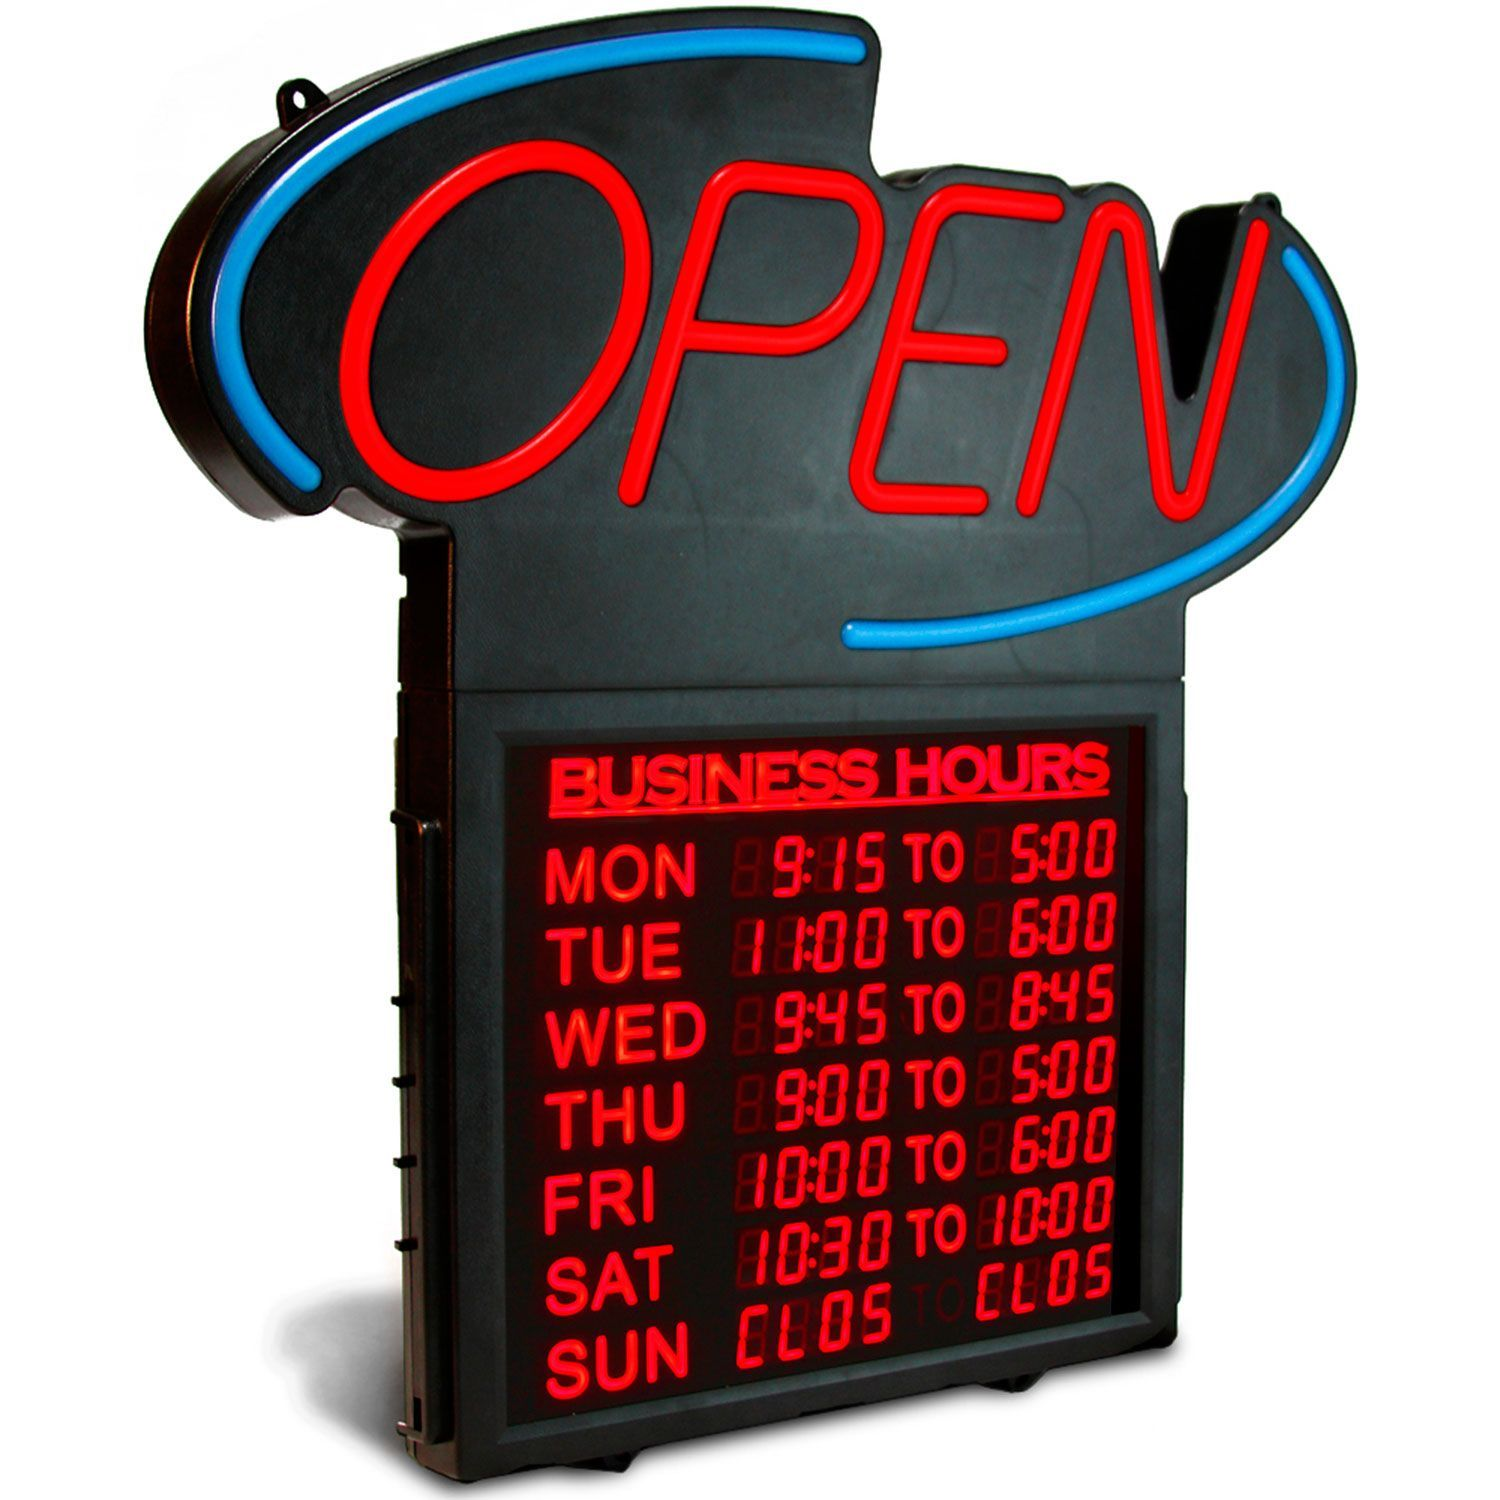 Business hours 20 open hours digital sign business signs for Michaels crafts hours today